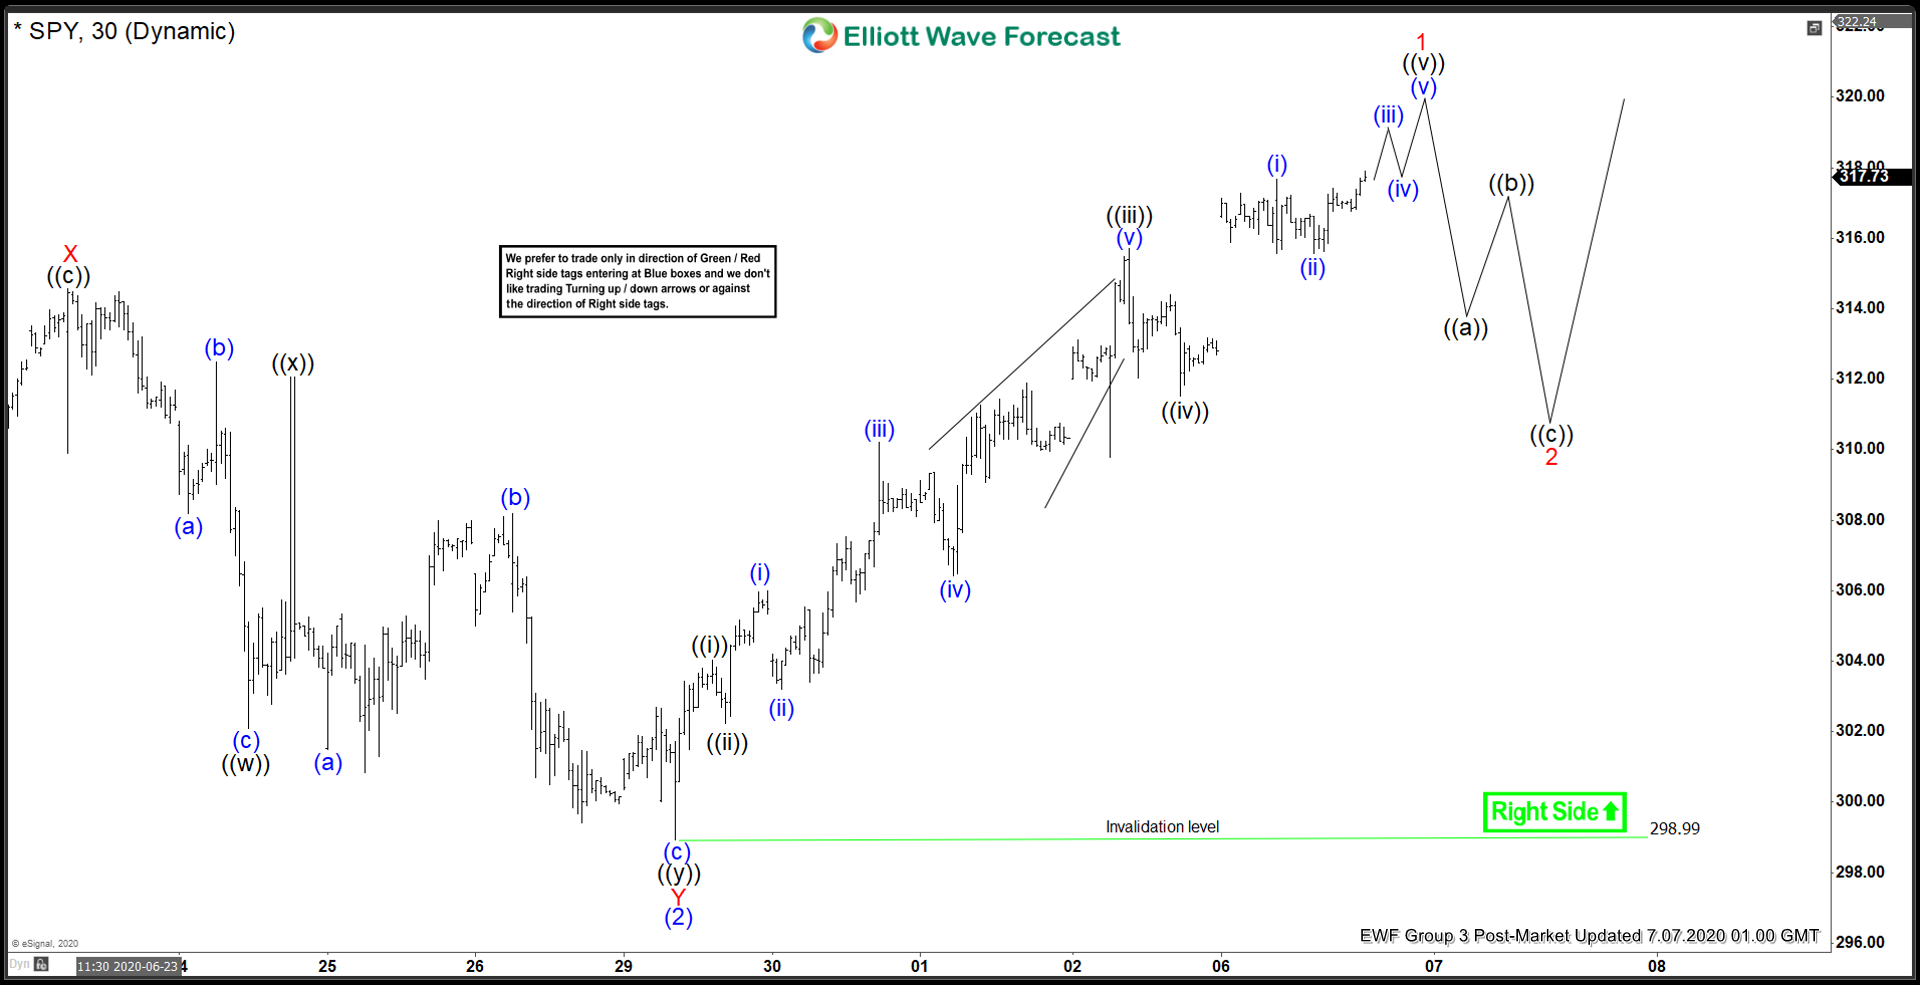 Elliott Wave View: SPY Looking to Extend Higher